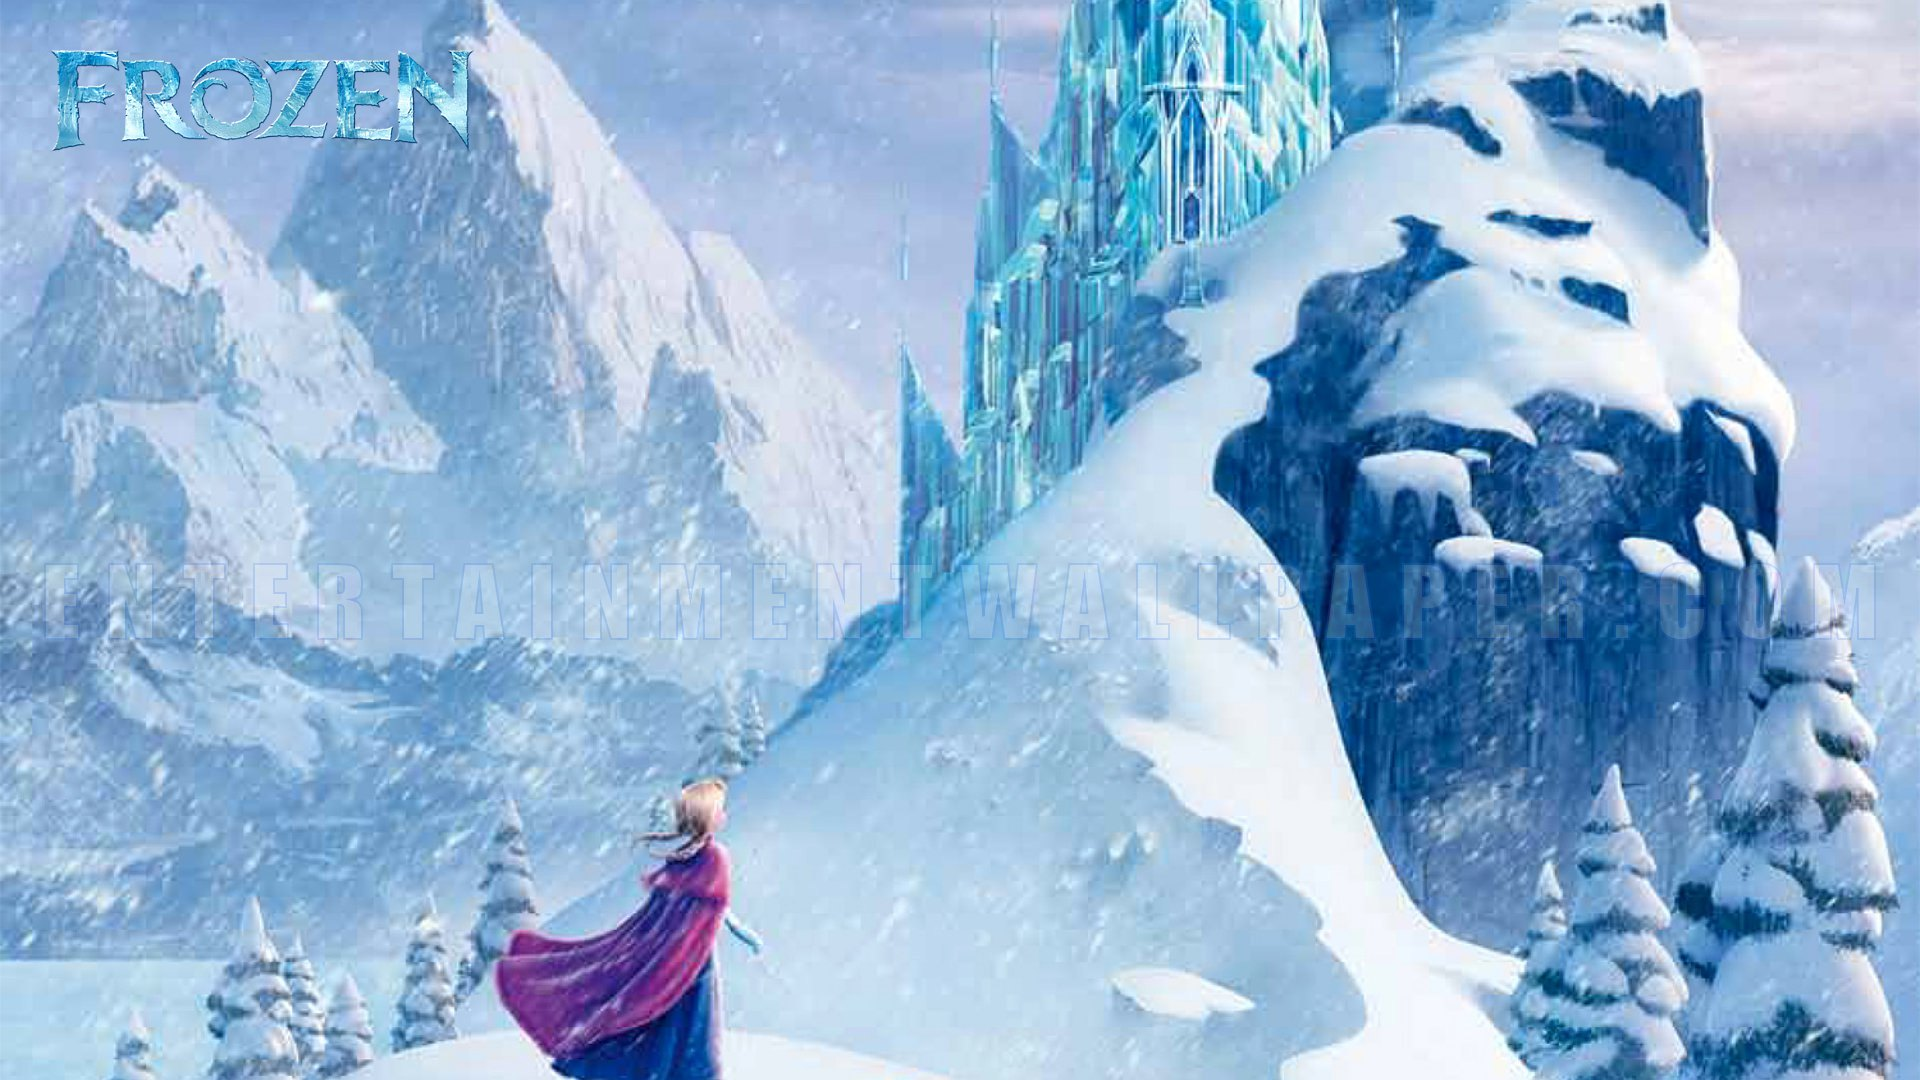 Frozen images Frozen HD wallpaper and background photos 35803754 1920x1080